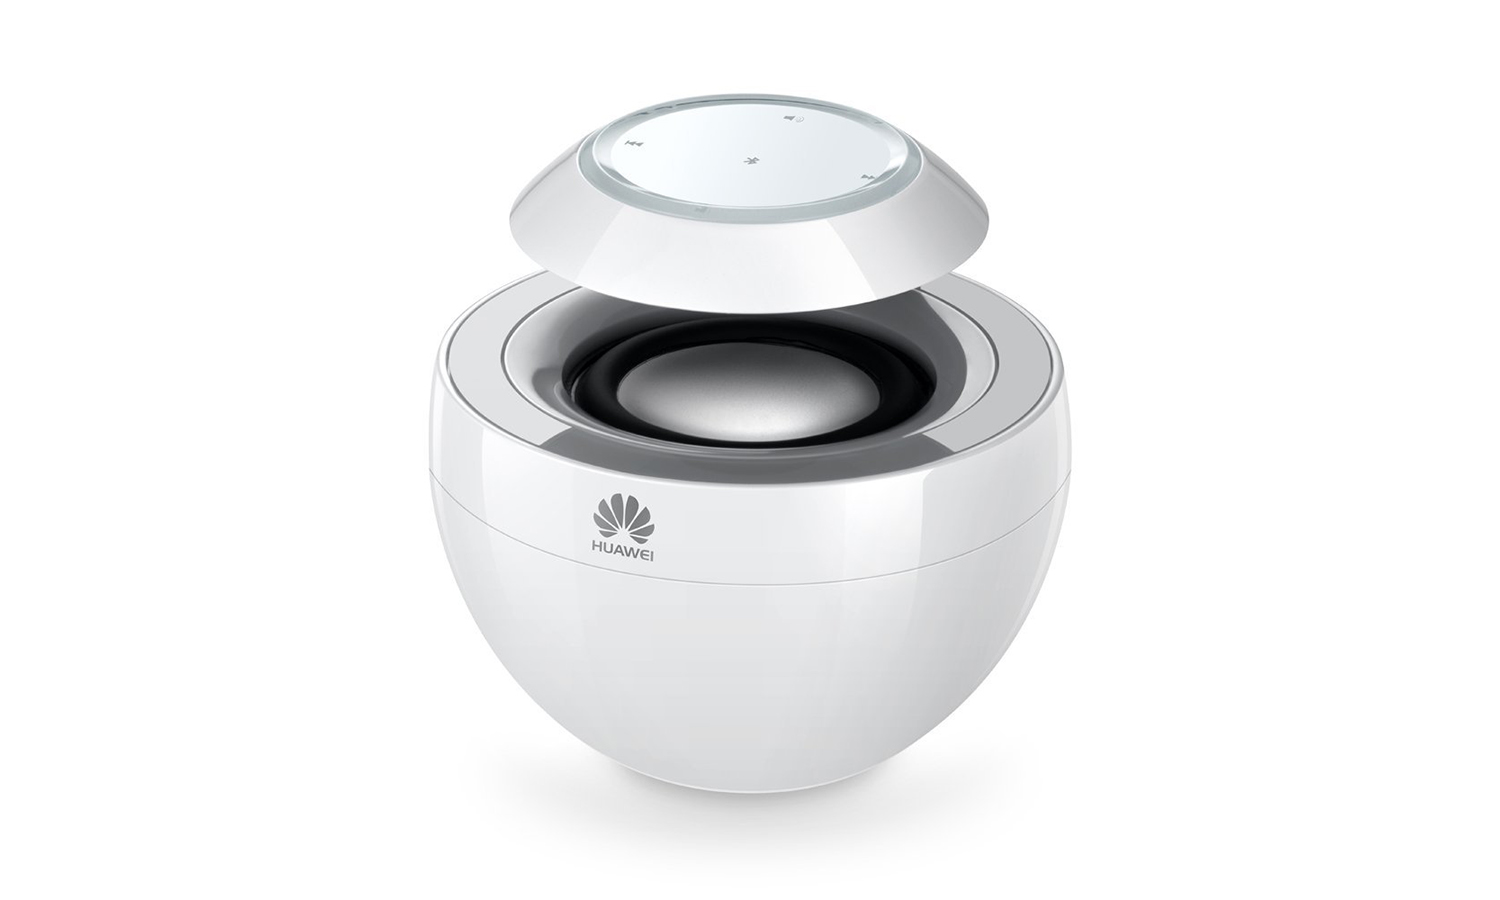 Altavoces Bluetooth inalámbricos Huawei AM08